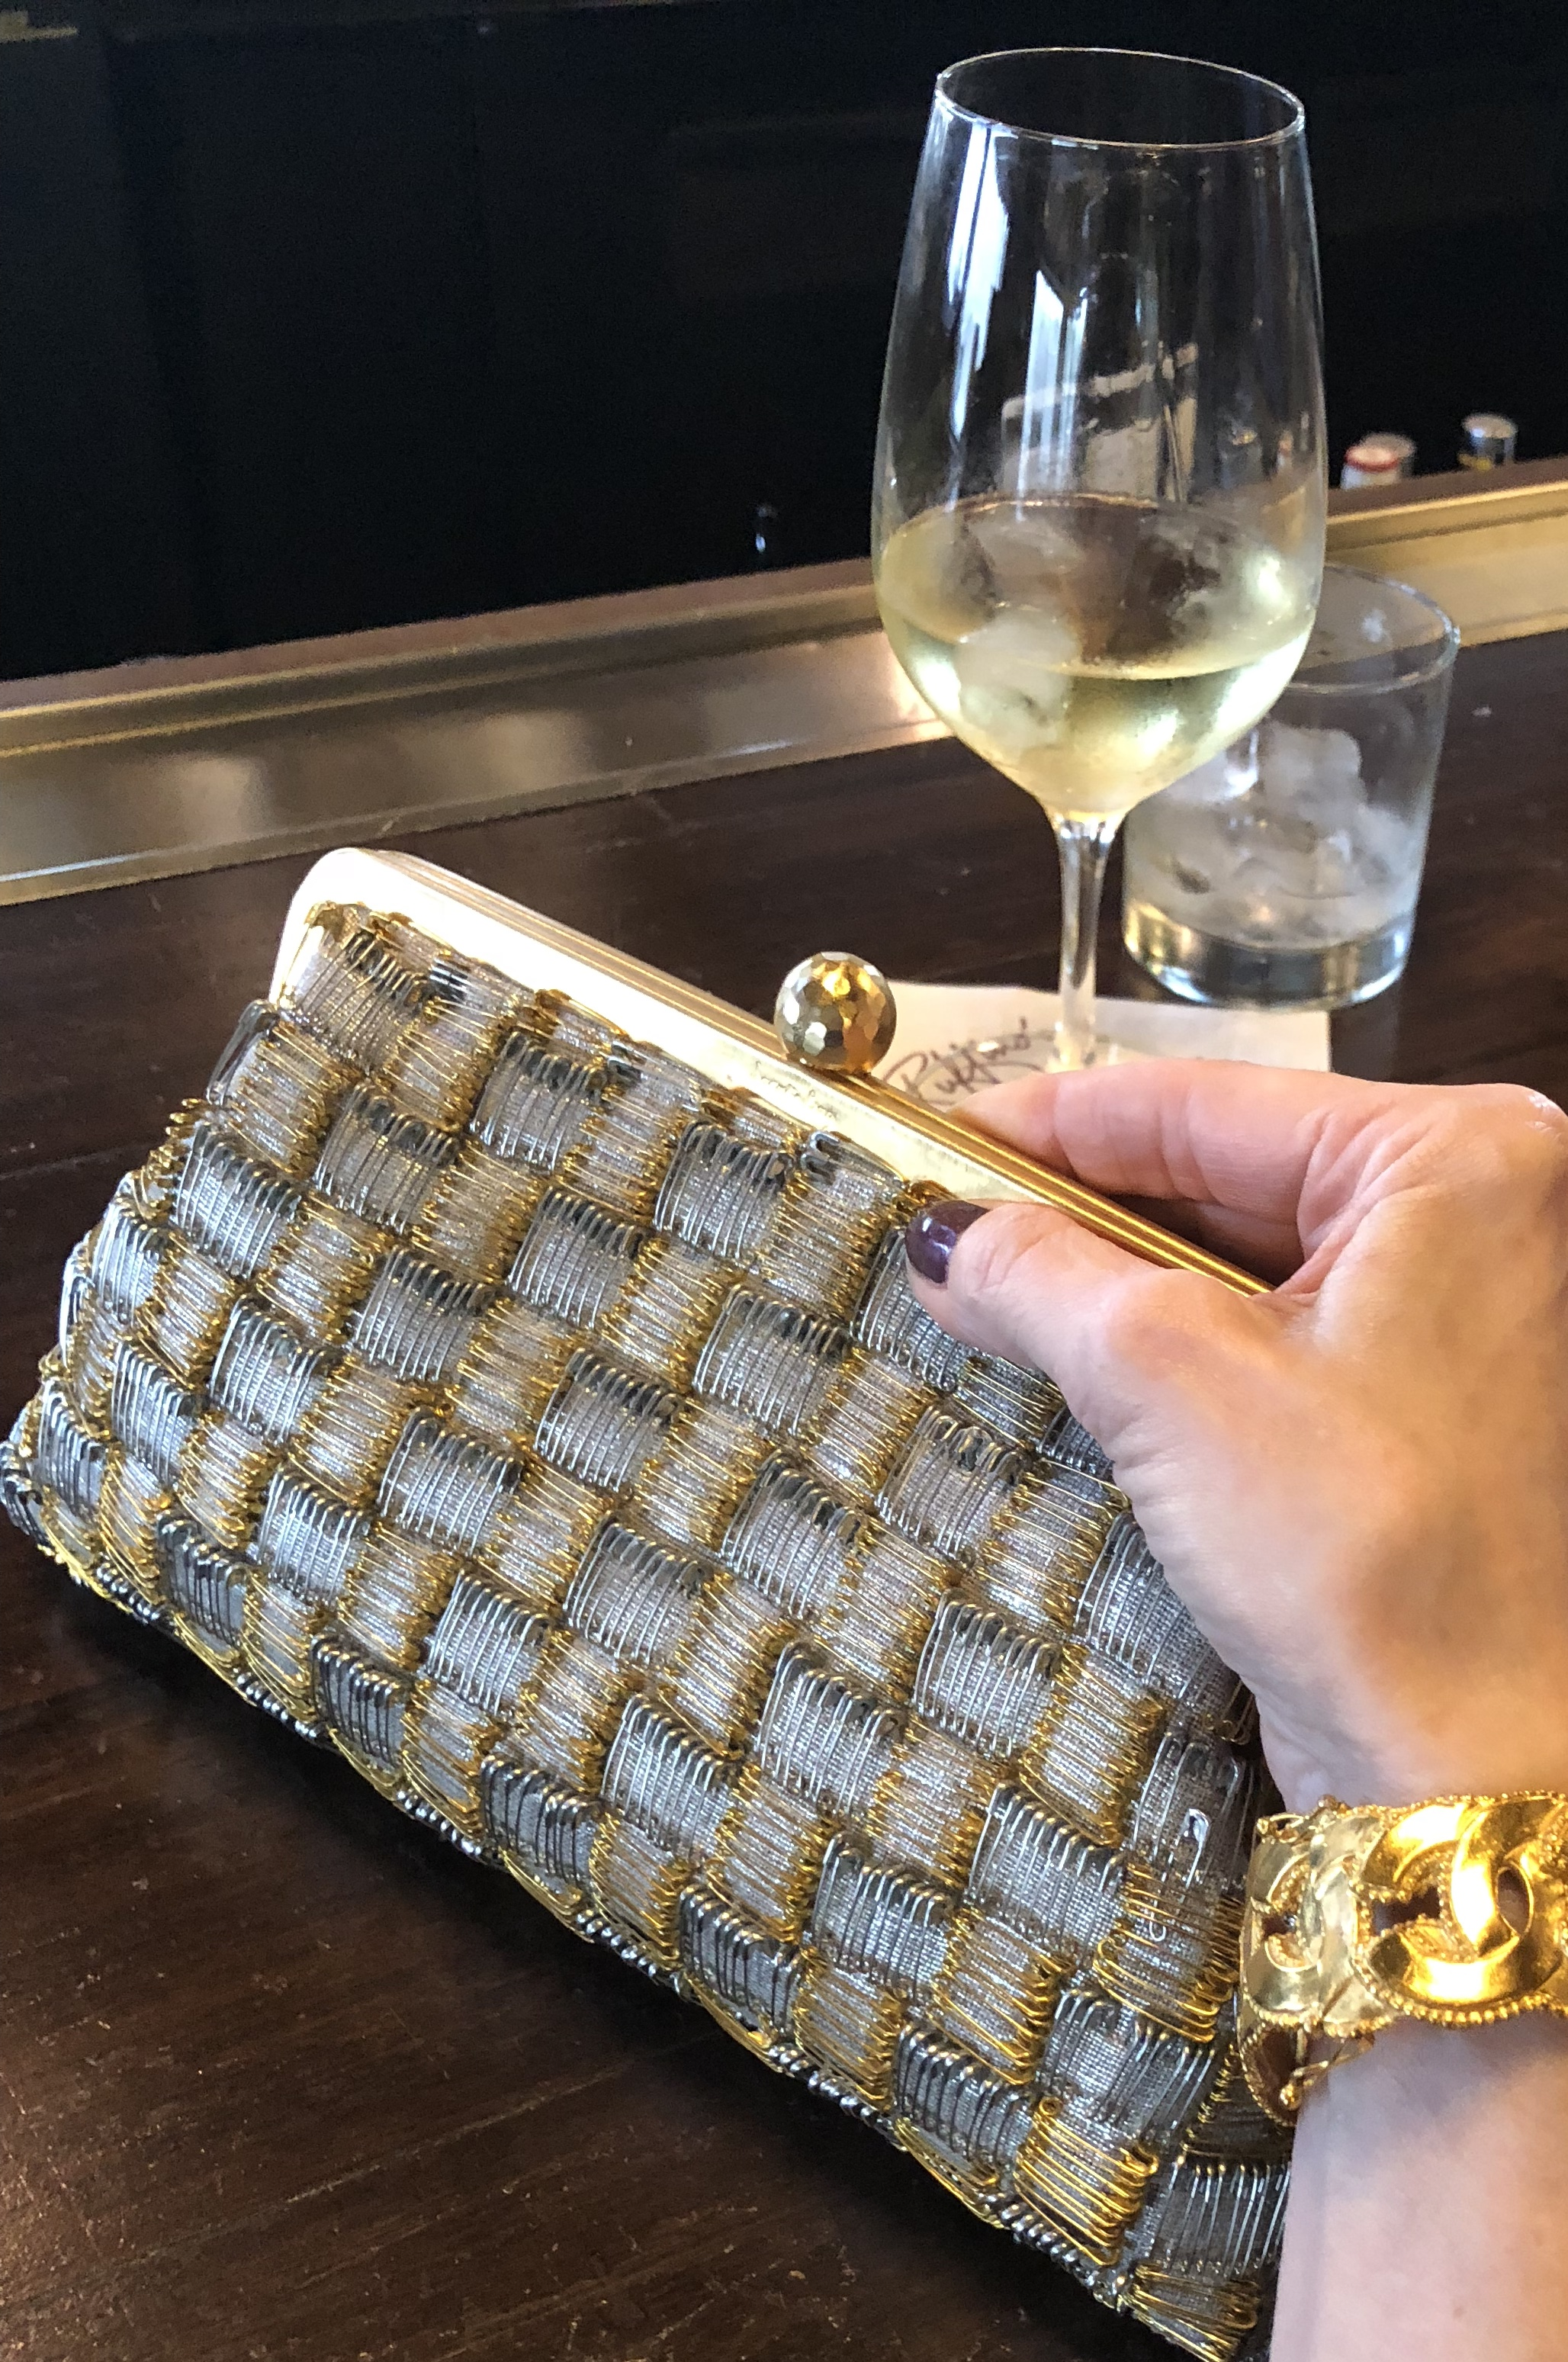 Watch for my post, coming soon... on this amazing handbag and the inspiring story behind it!